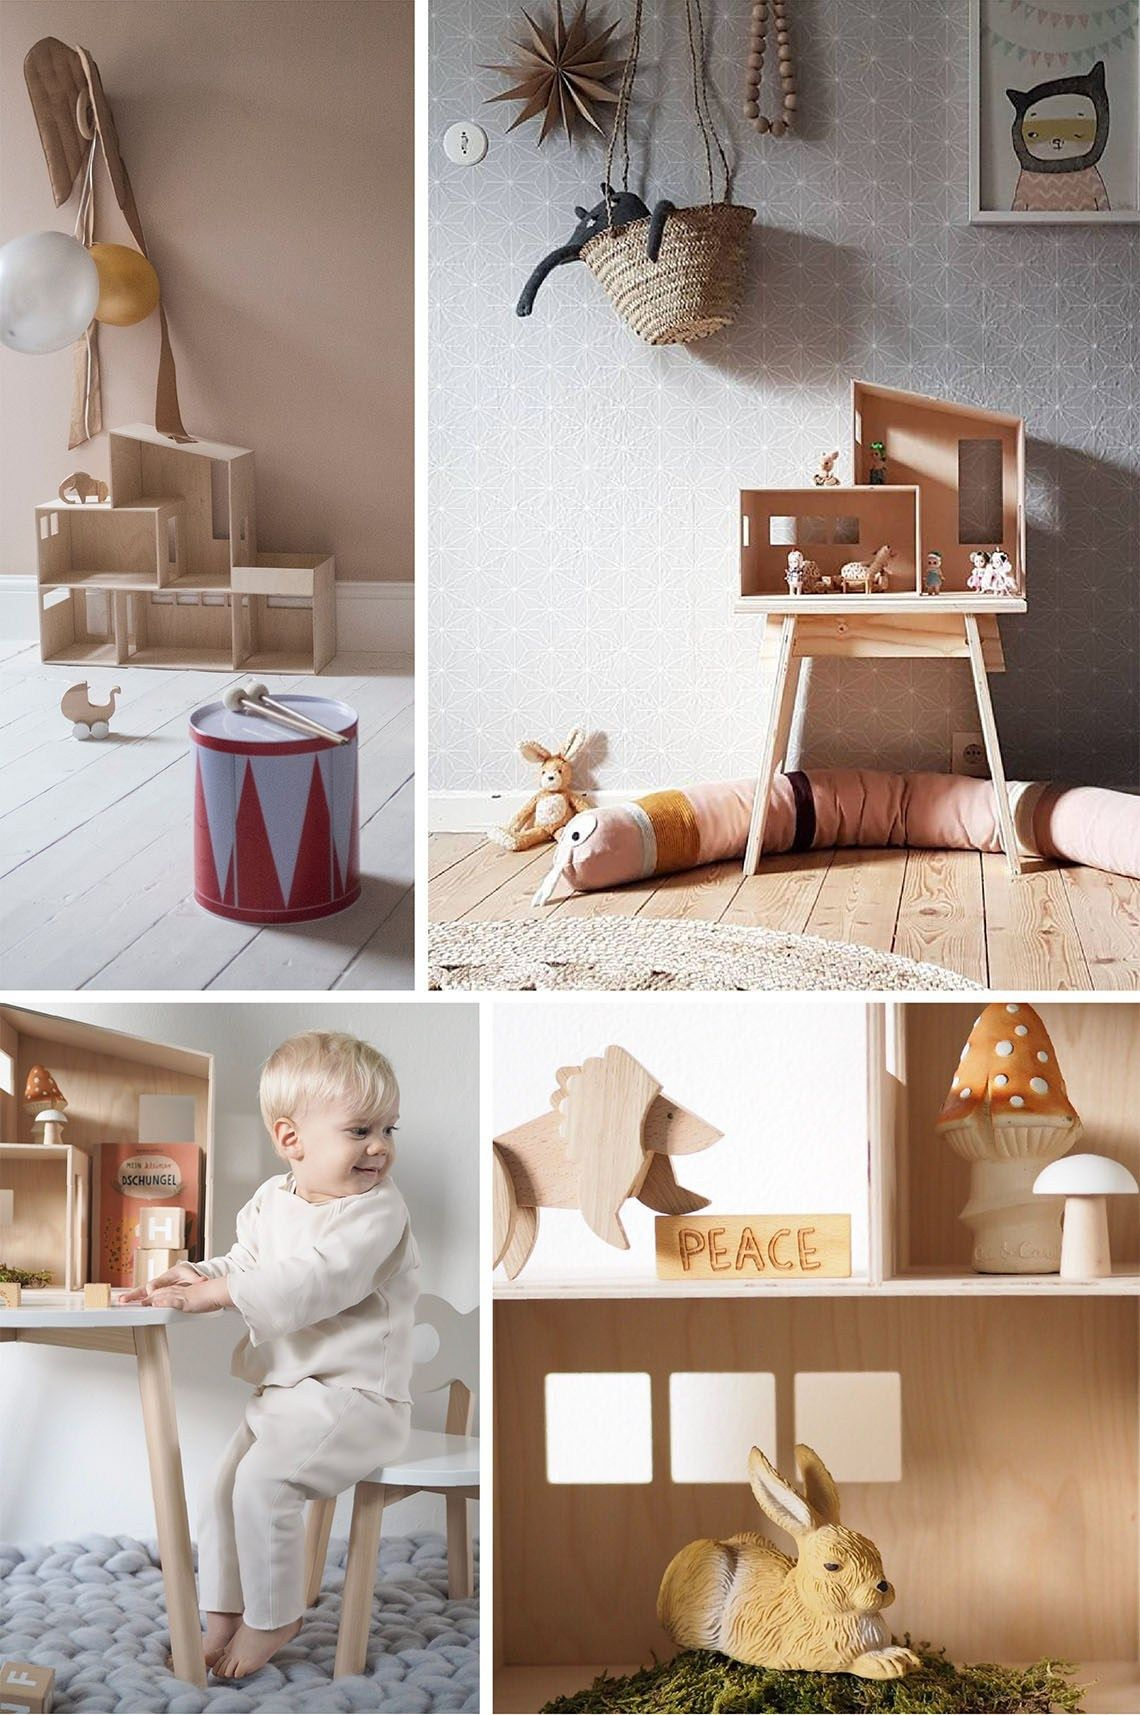 Kids Will Love This Design Dollhouse The Funkis Doll House By